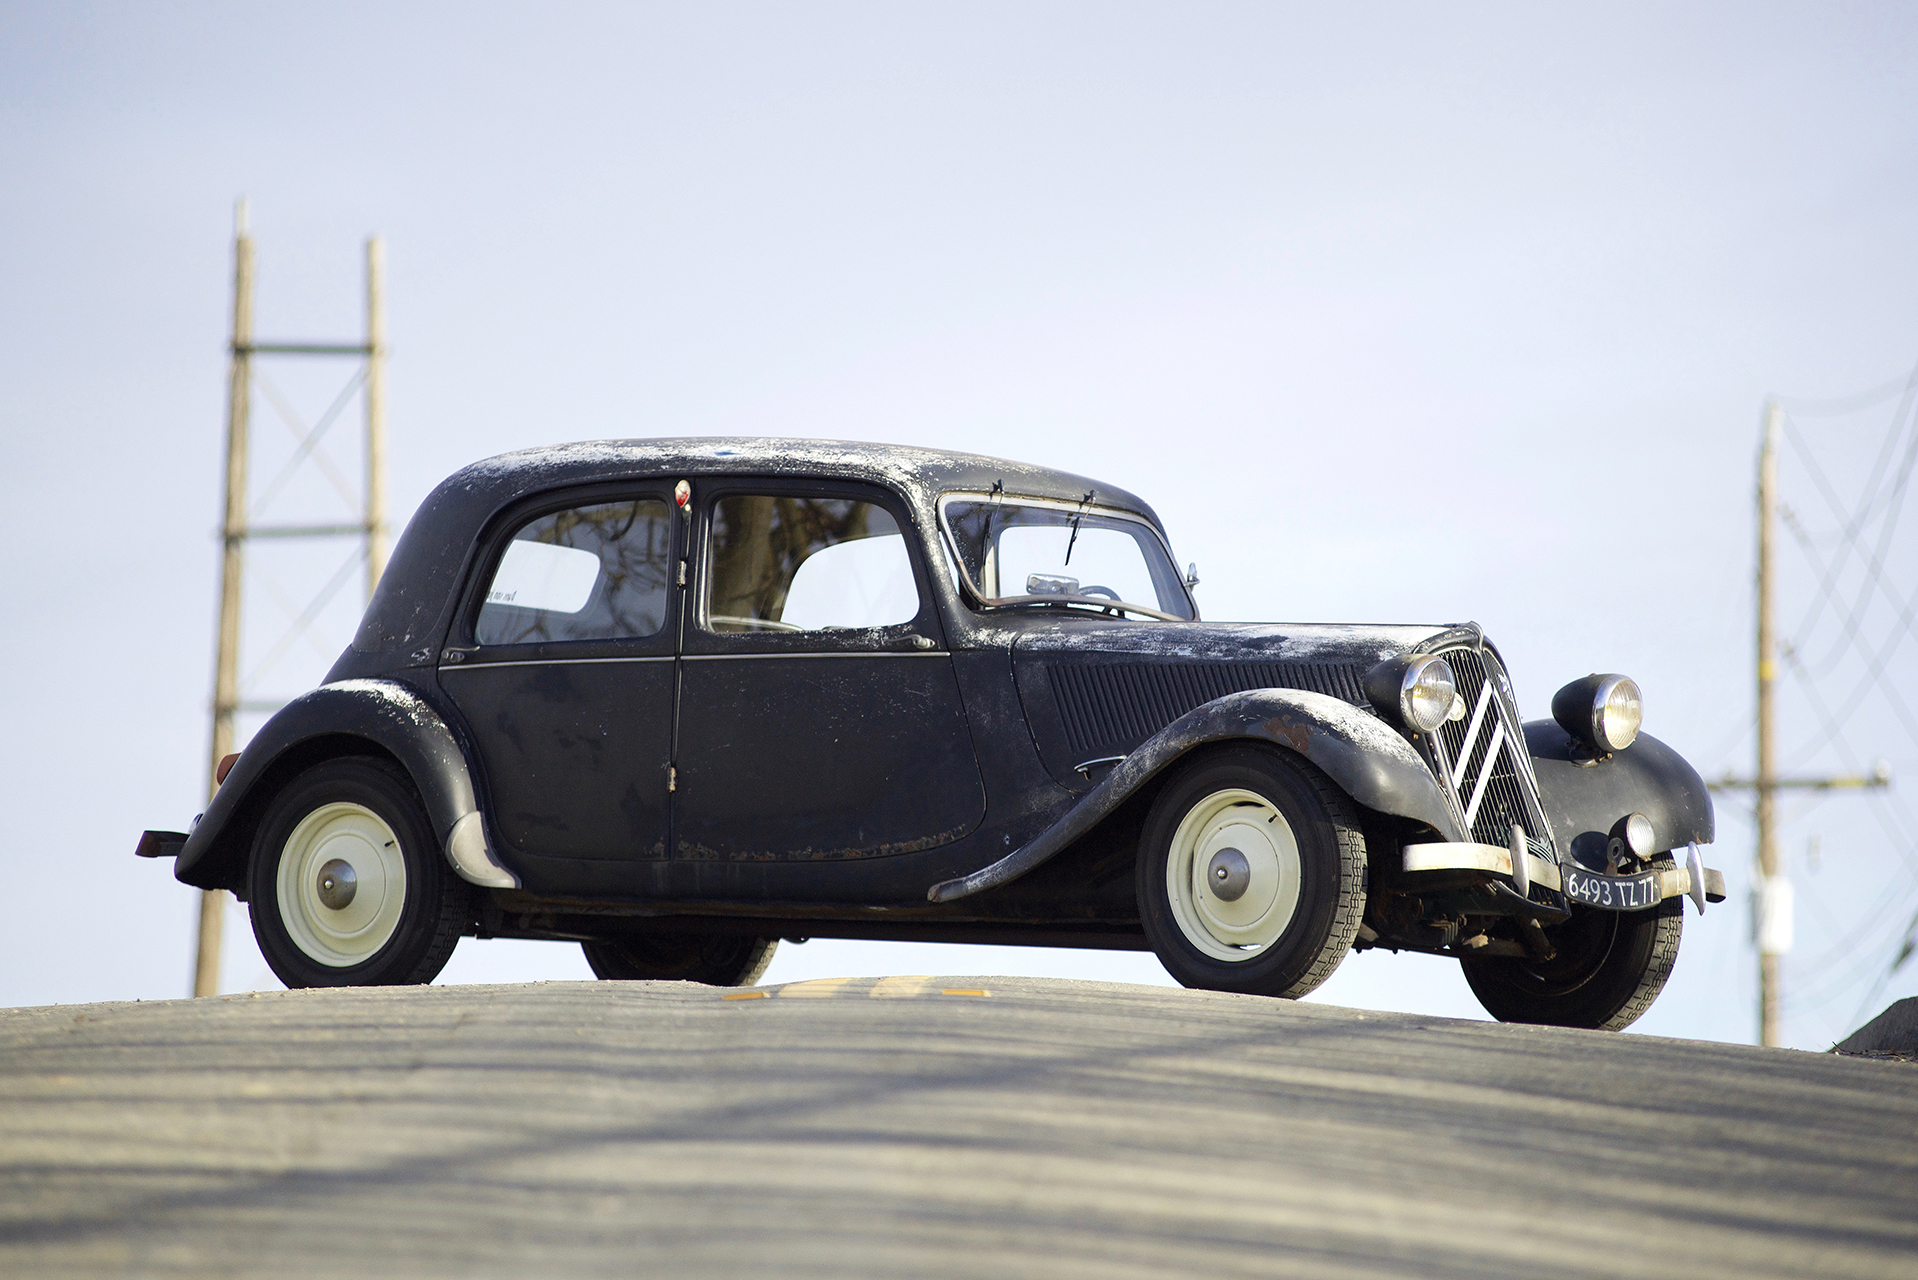 Chris Sanchez' 1949 Citroën 11CV Berline Légère Traction Avant has great lines with plenty of patina. It's not hard to see why it was a big hit with the French public.